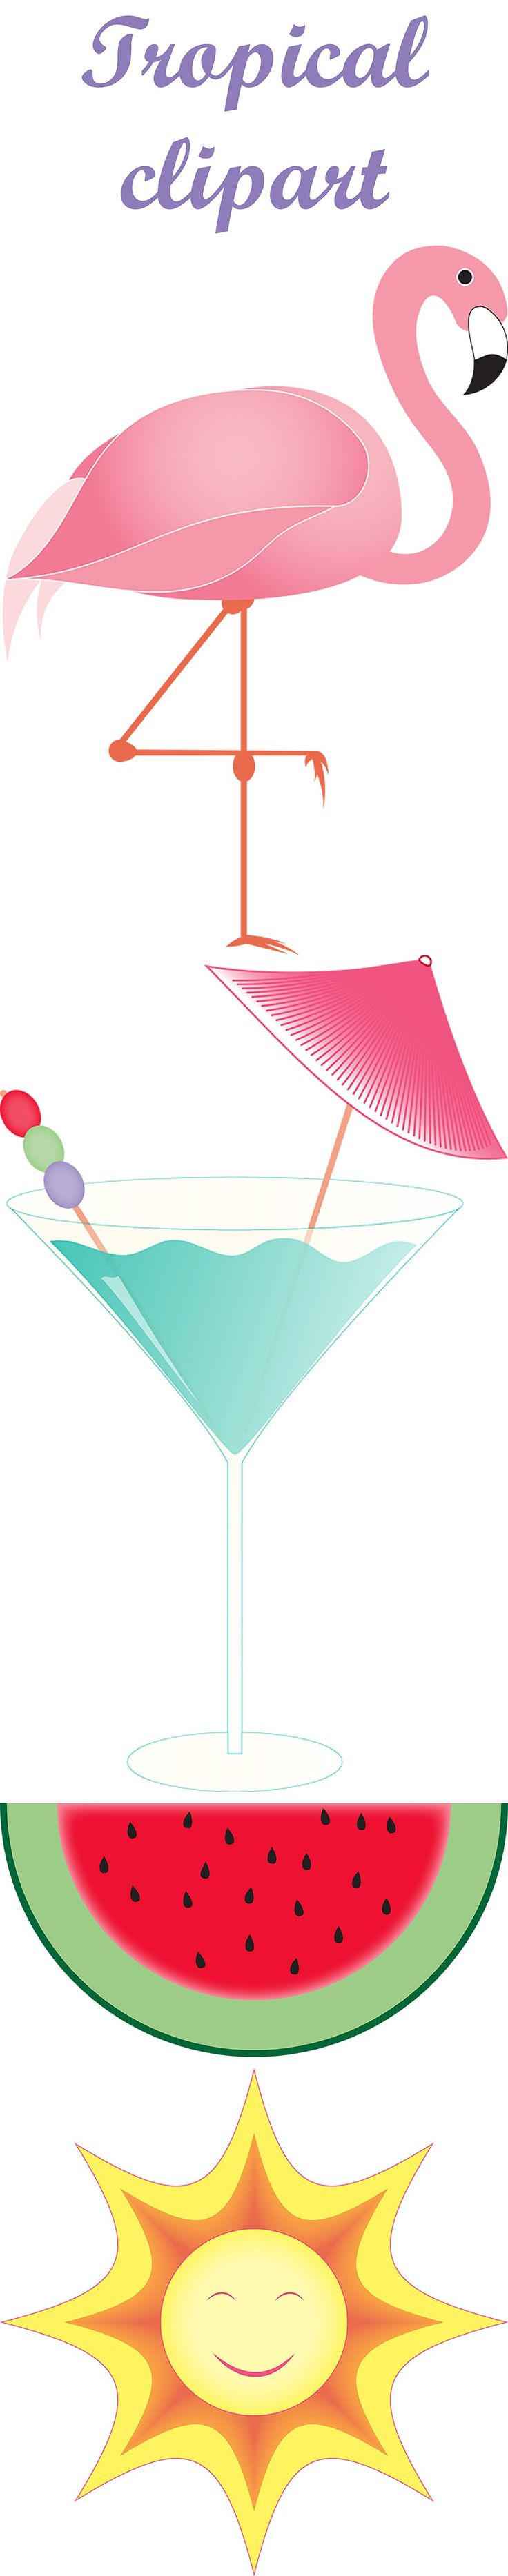 Digital Tropical Clipart With Cocktail Flamingo Melon